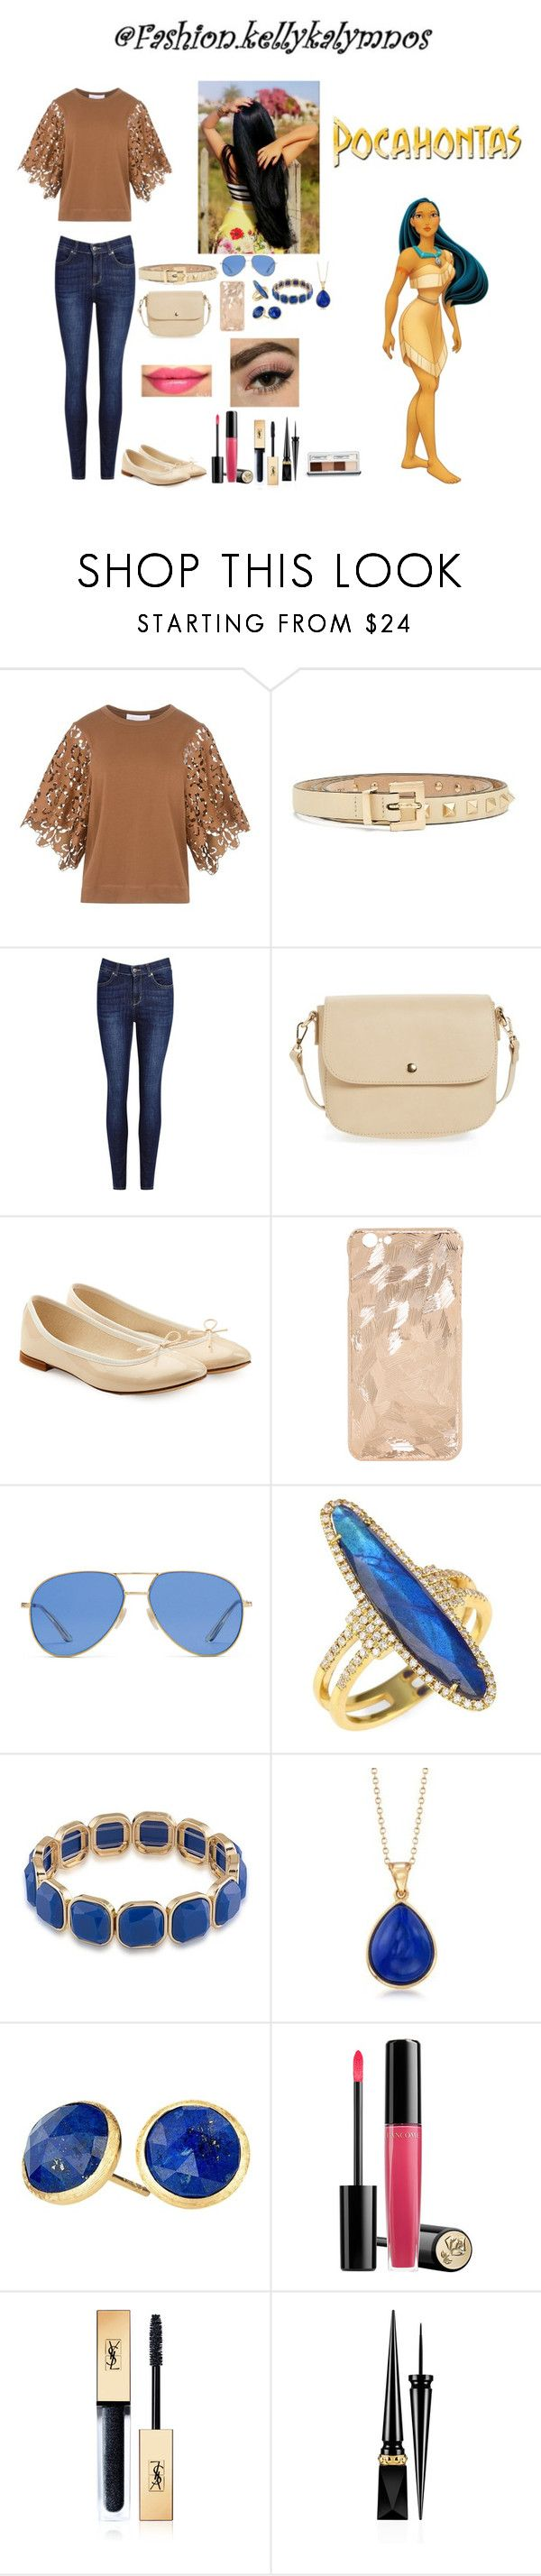 """""""Pocahontas as casual"""" by kellykalymnoskd on Polyvore featuring Disney, See by Chloé, Valentino, BP., Repetto, Gucci, Meira T, 1st & Gorgeous by Carolee, Ross-Simons and Marco Bicego"""